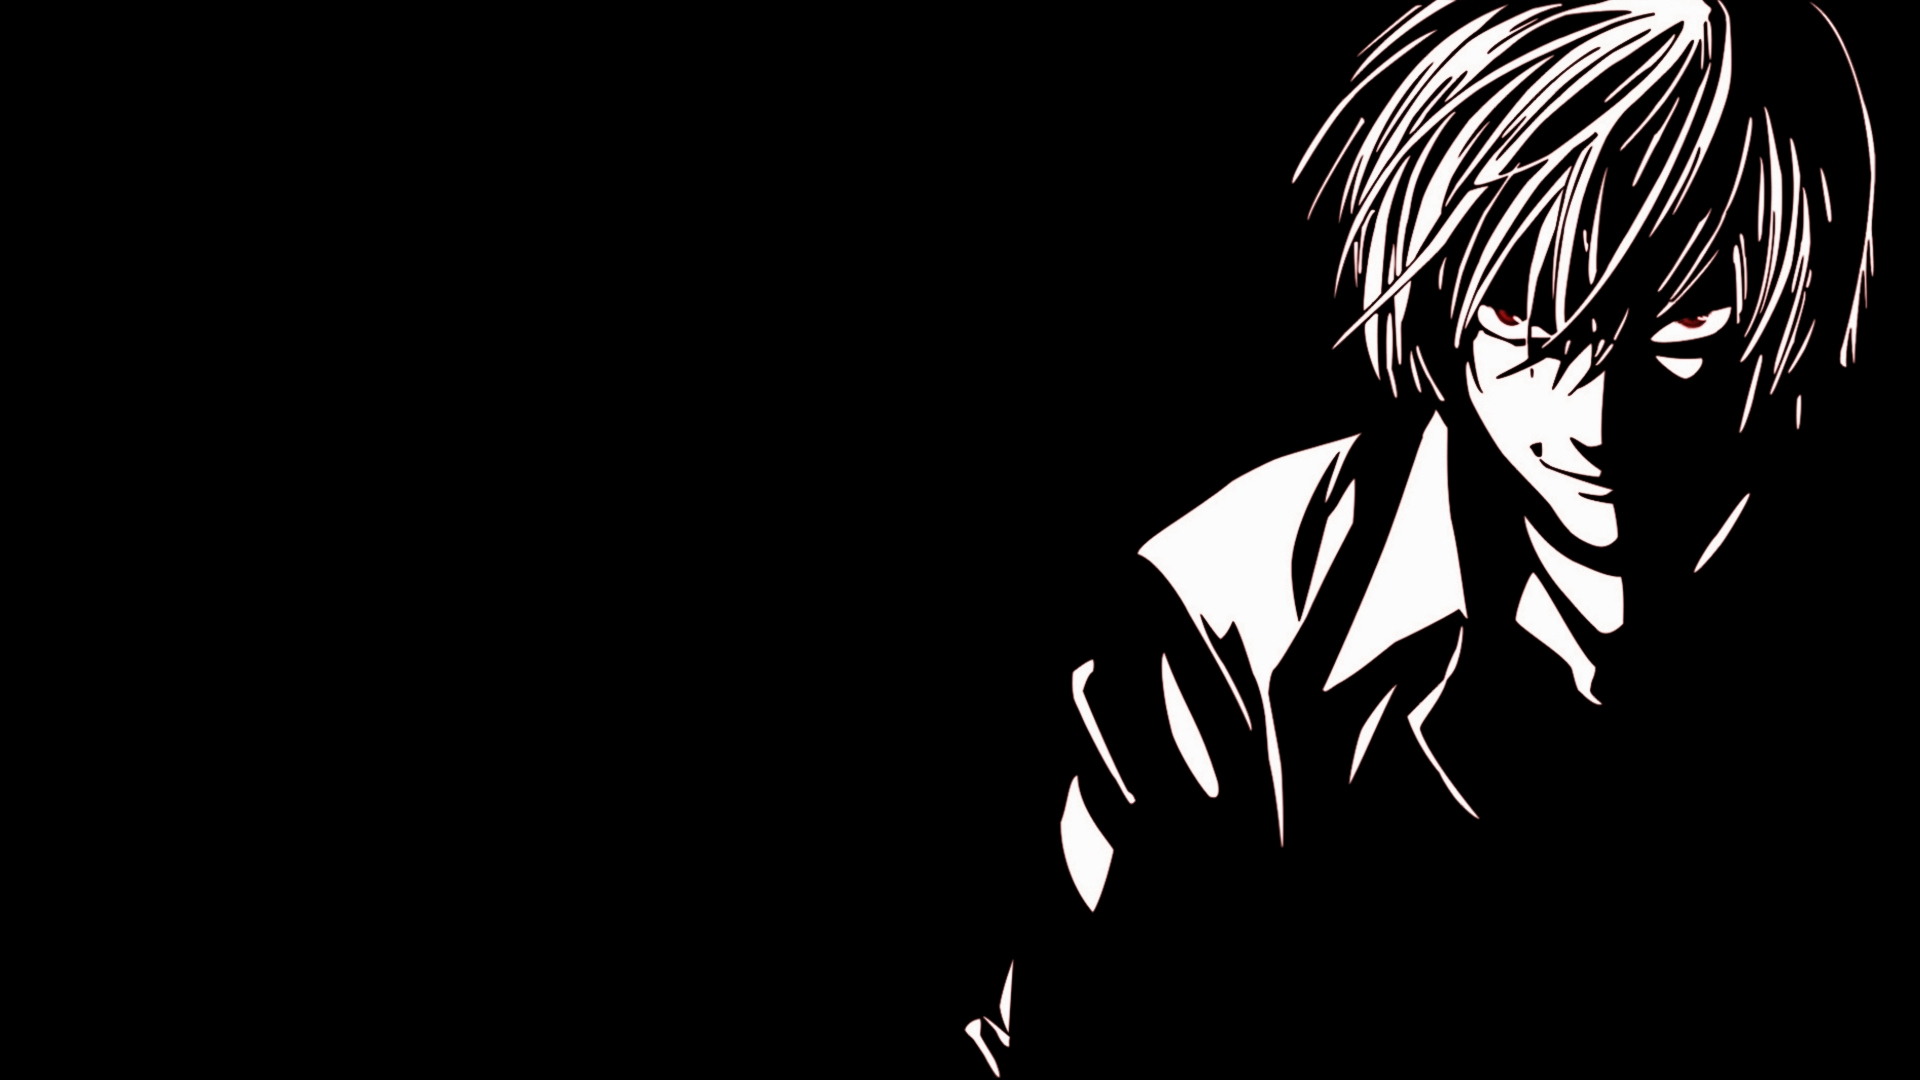 death note – light yagami | ps4wallpapers